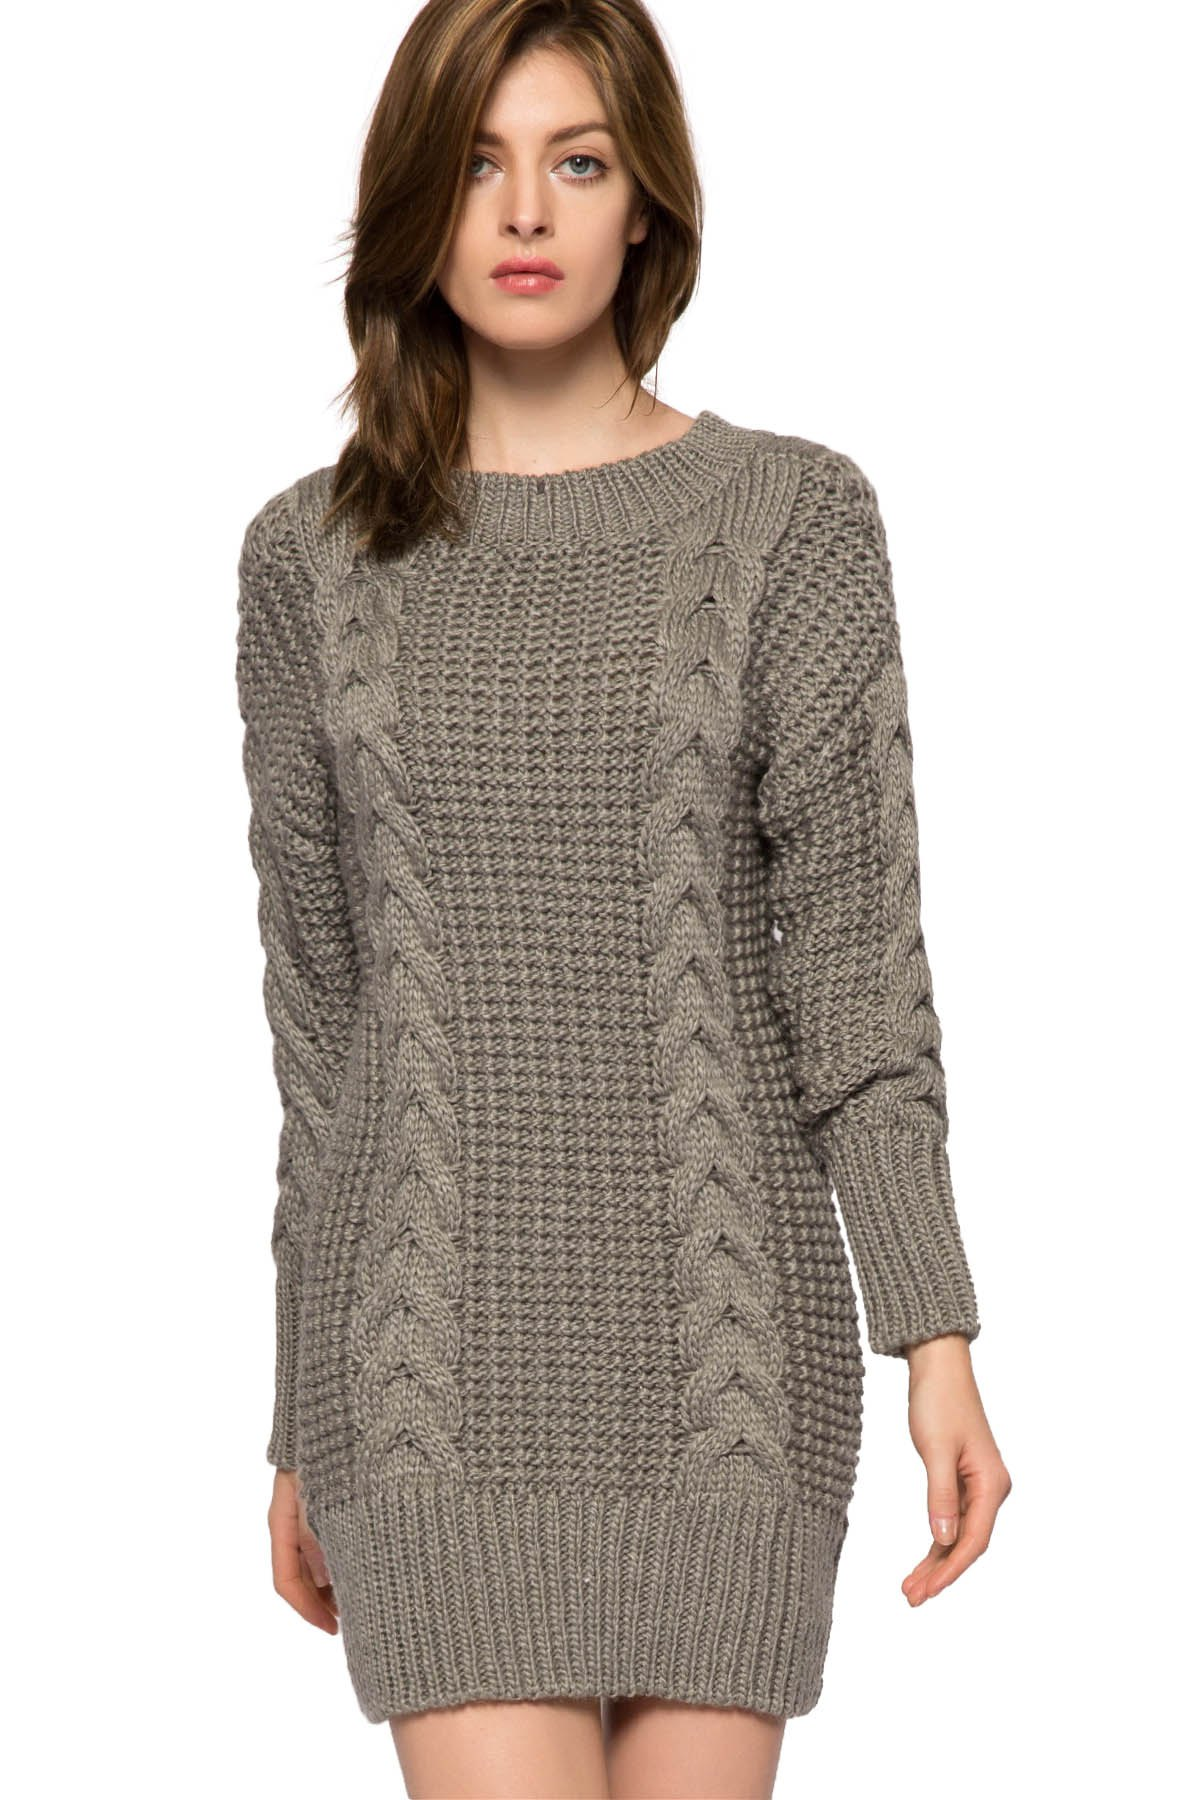 Solid Color Cable-Knit Sweater Dress GRAY Sweater Dresses | ZAFUL